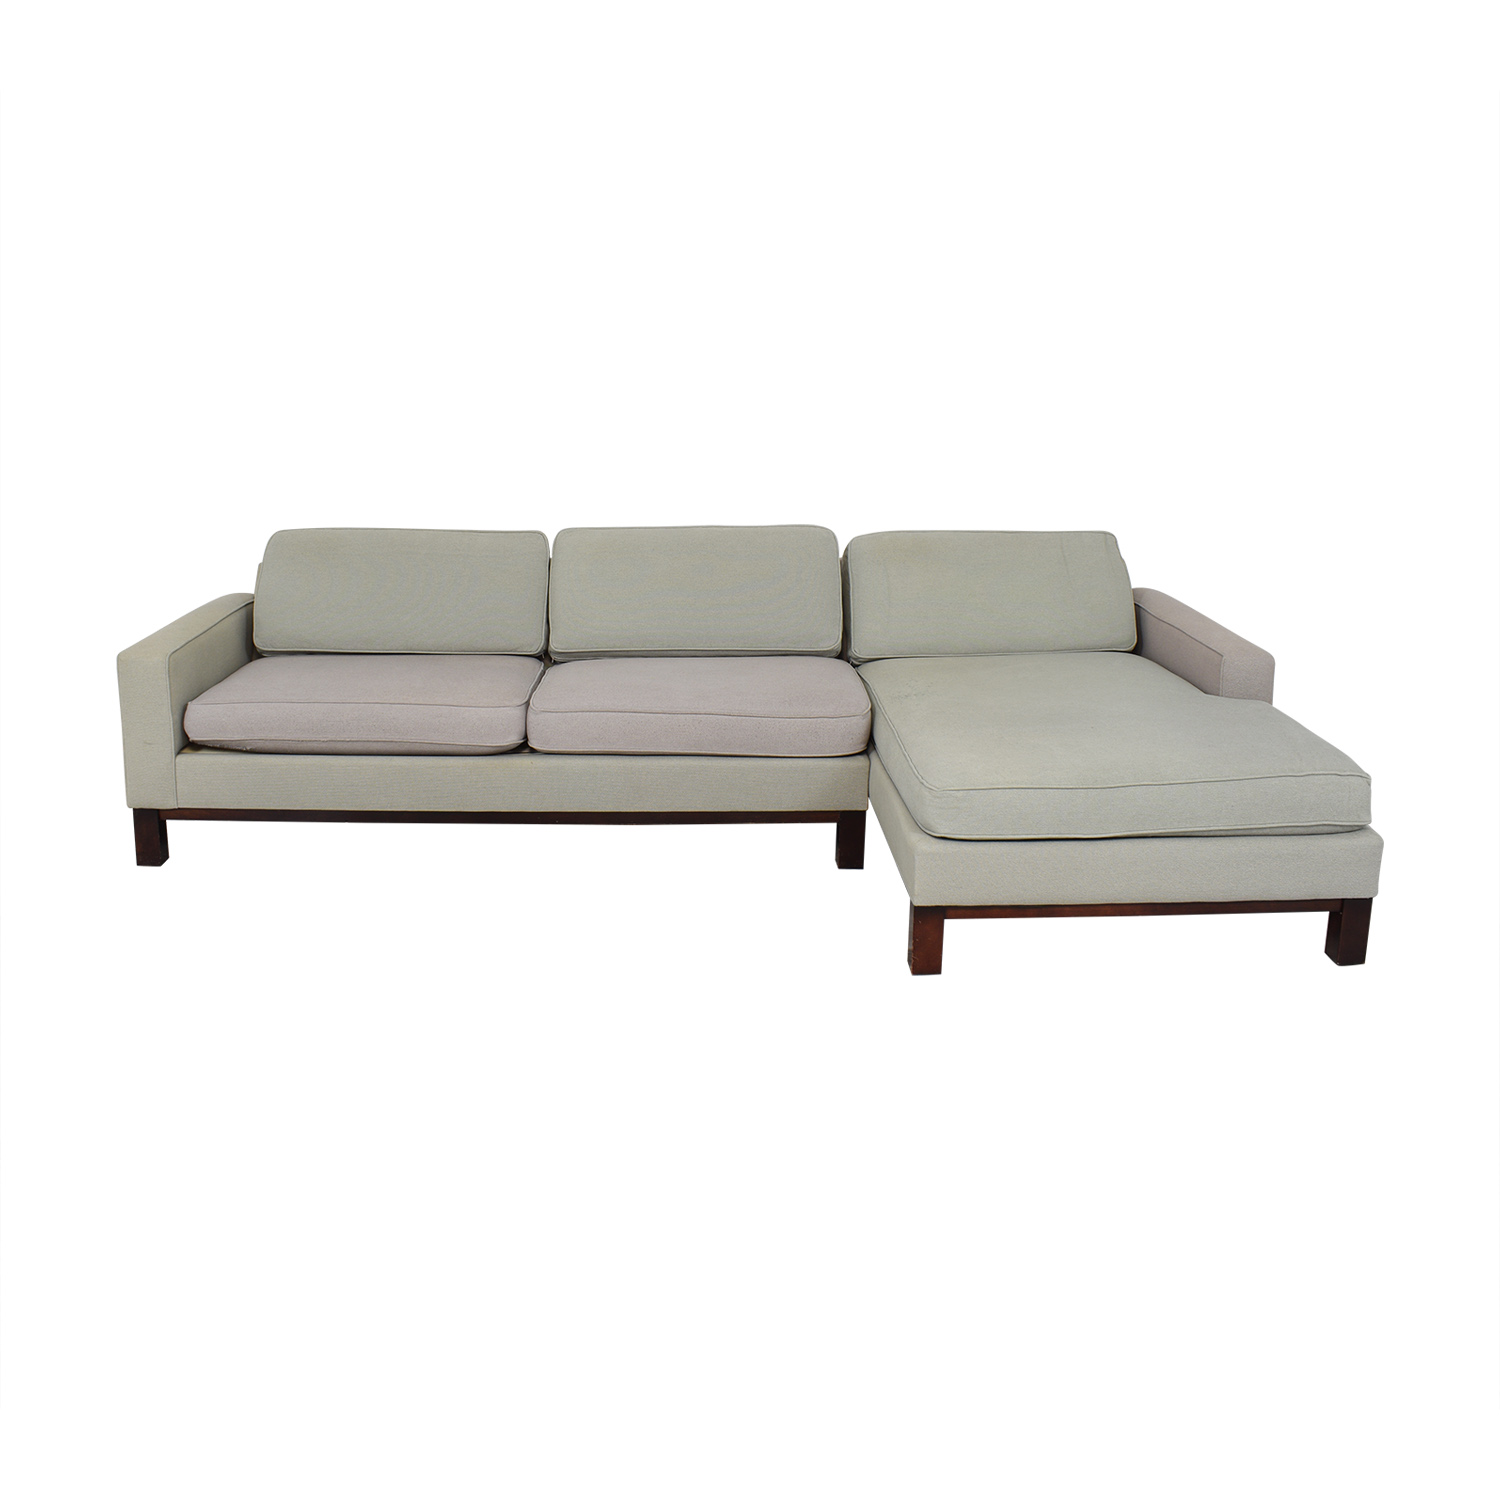 buy Room & Board Room & Board Chaise Sectional Sofa online